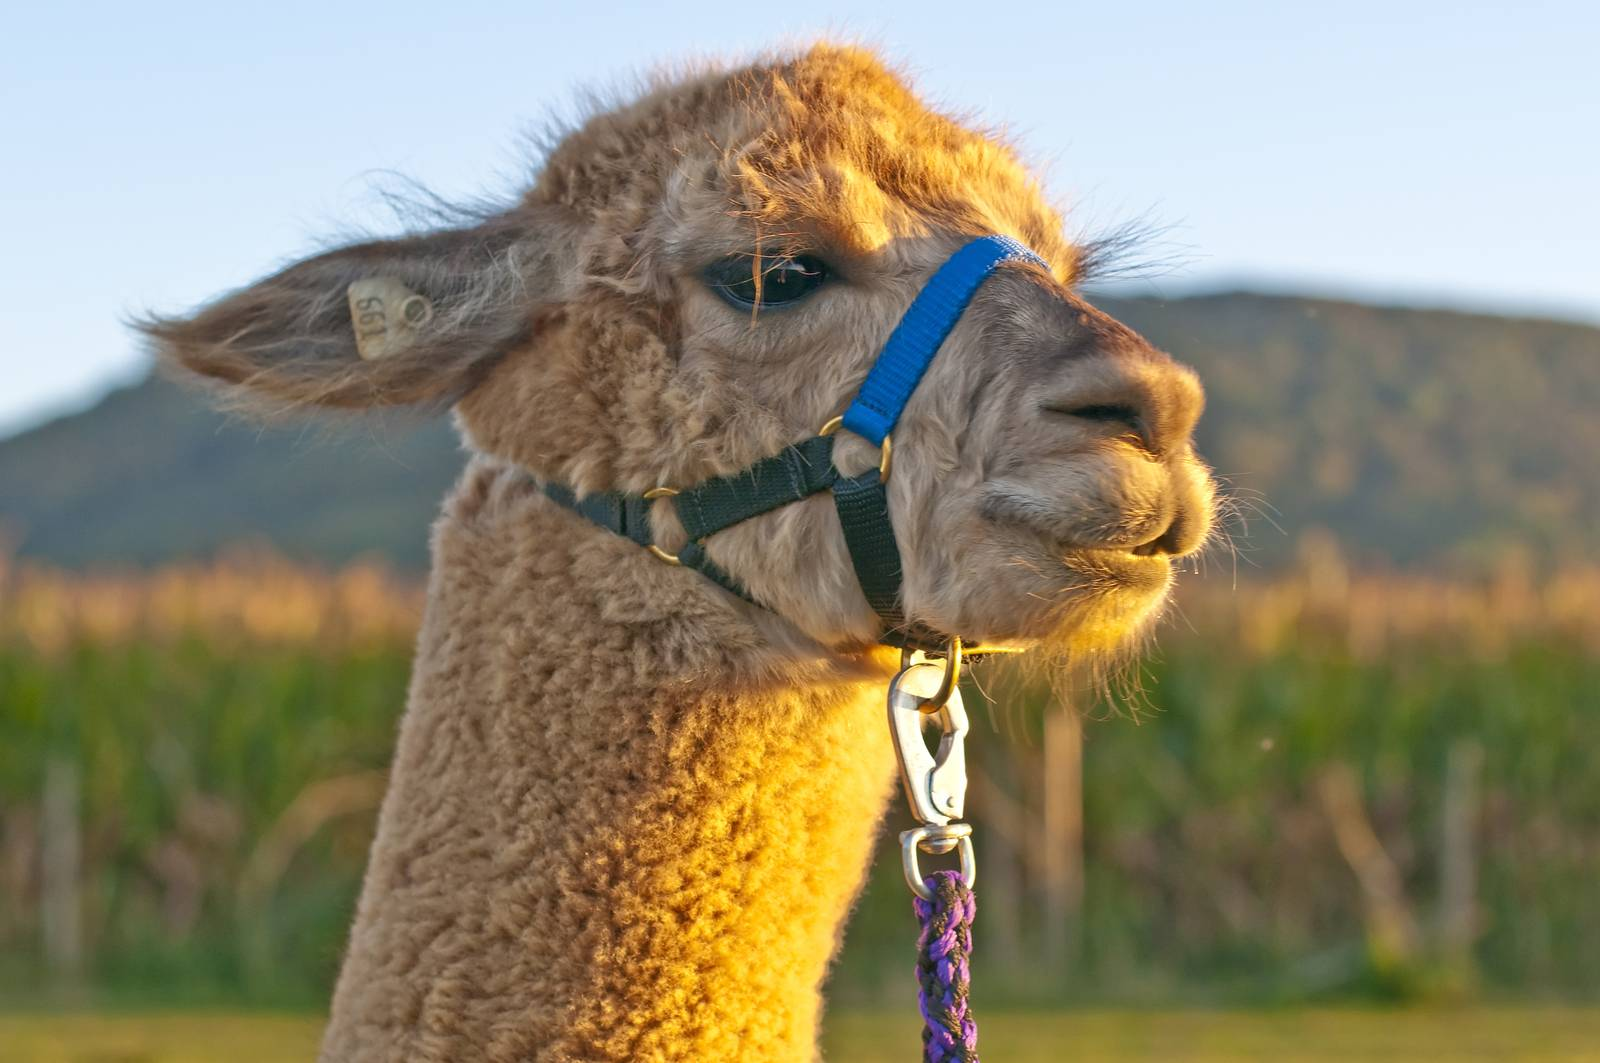 AAT, assisted animal therapy, adorable, alpaca, America, Andes - D34298246